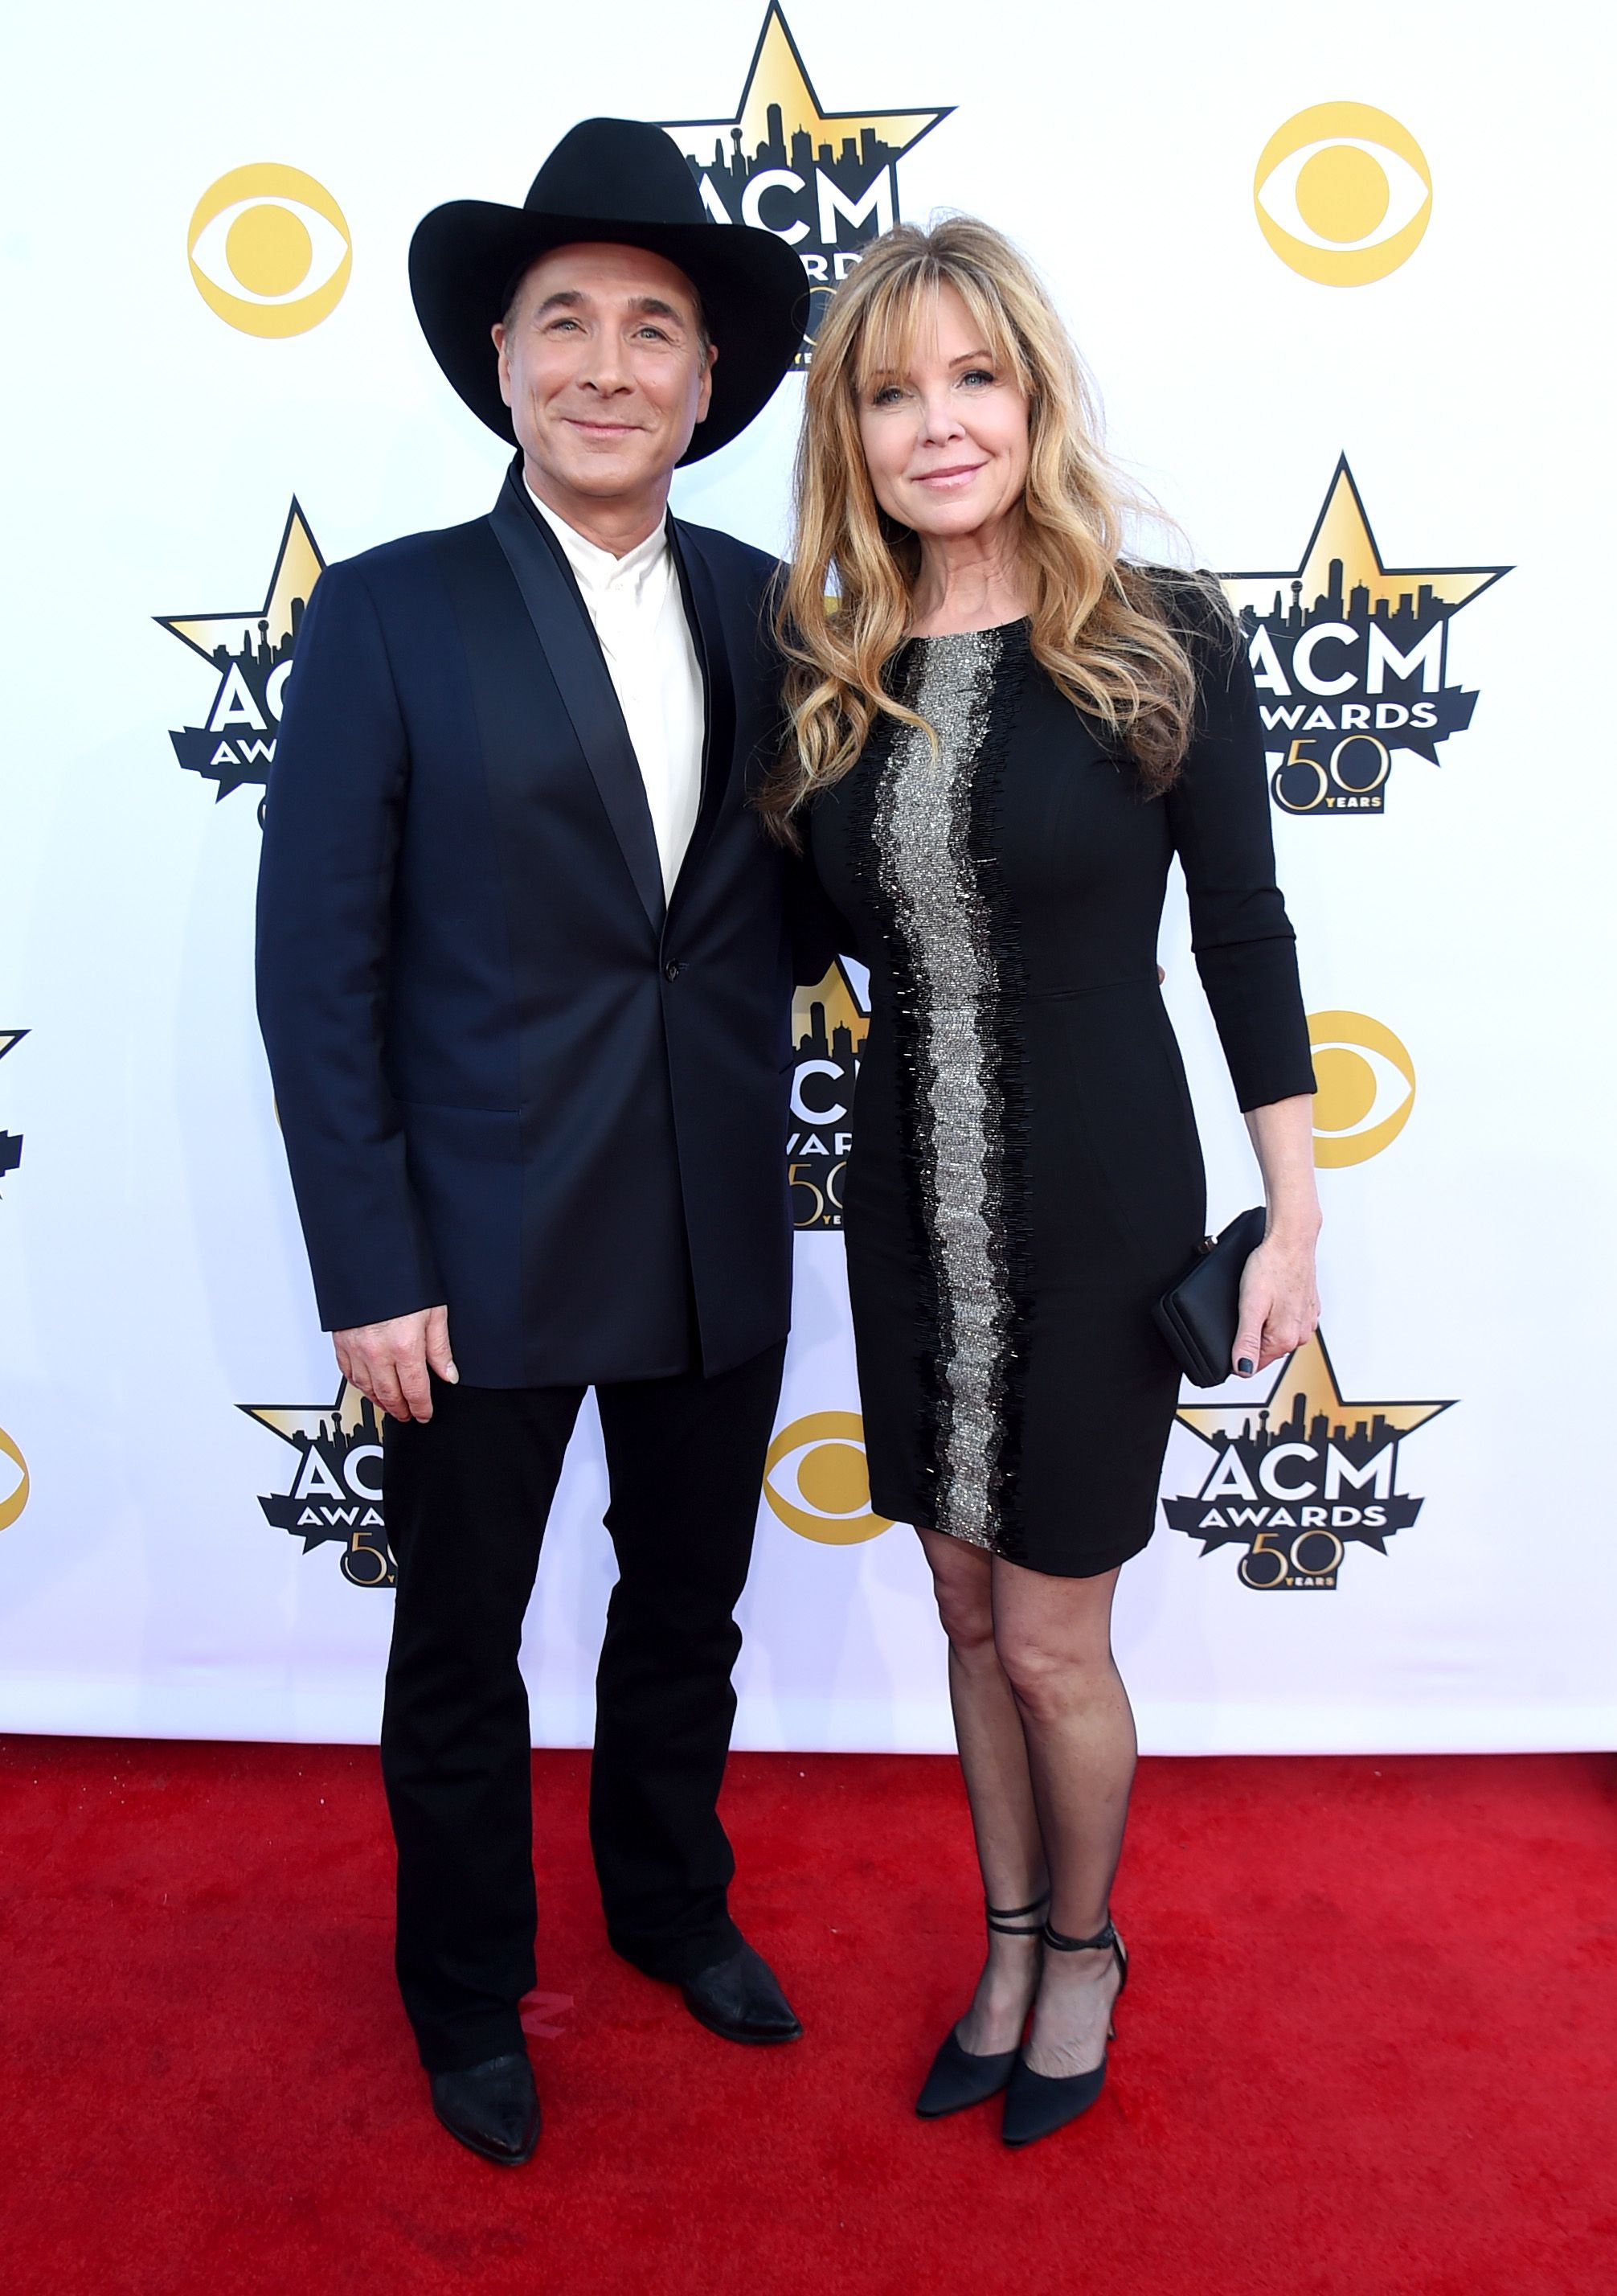 Clint Black and Lisa Hartman Black at the 50th Academy of Country Music Awards on April 19, 2015, in Arlington, Texas   Photo: Rick Diamond/ACM2015/Getty Images